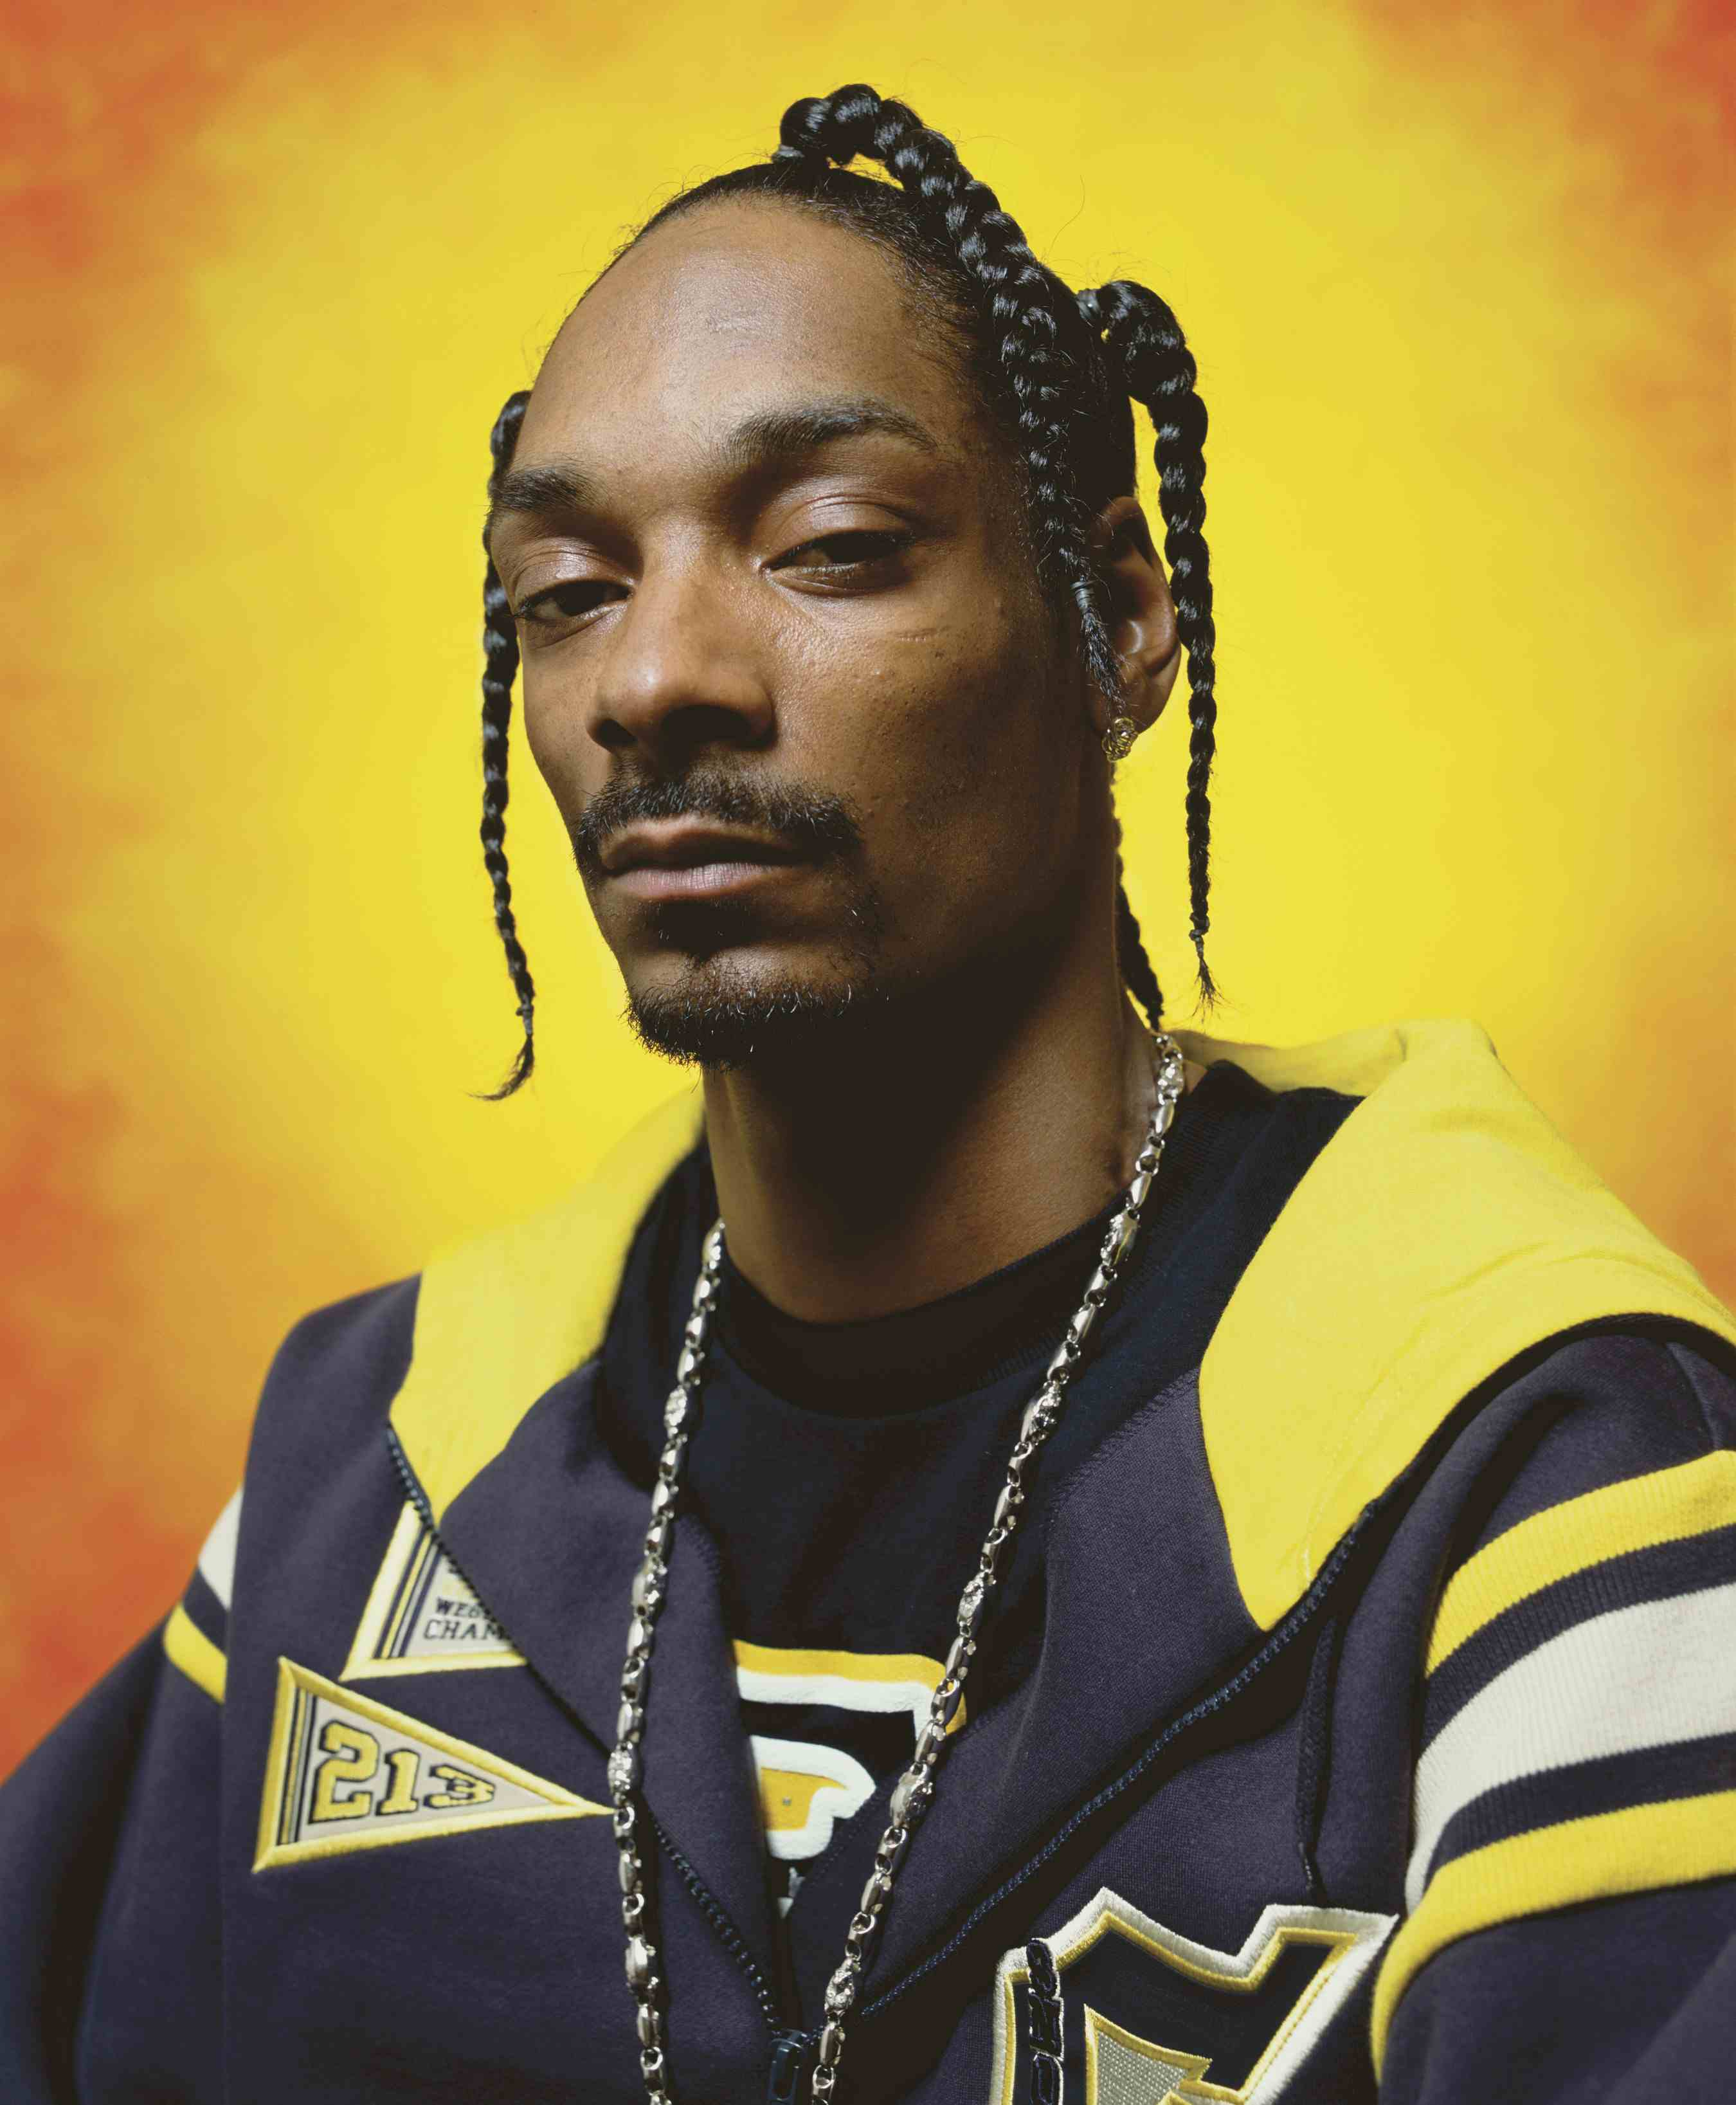 Snoop dogg hair